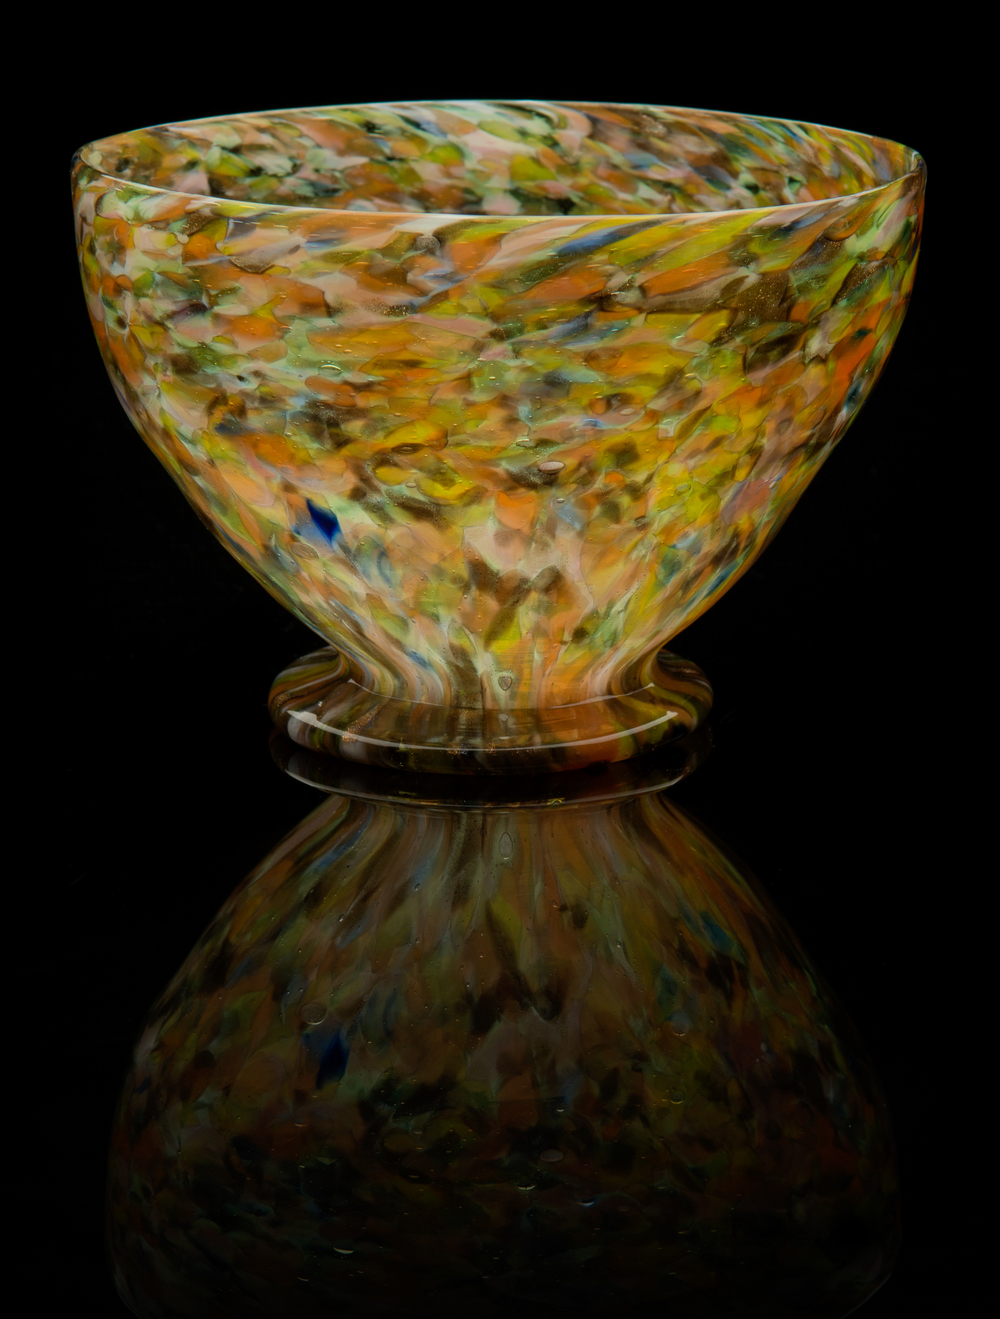 Pietro Bigaglia,  Screziato Bowl  (1860, glass, 3 5/8 x 5 5/16 x 5 5/16 inches), VV.553